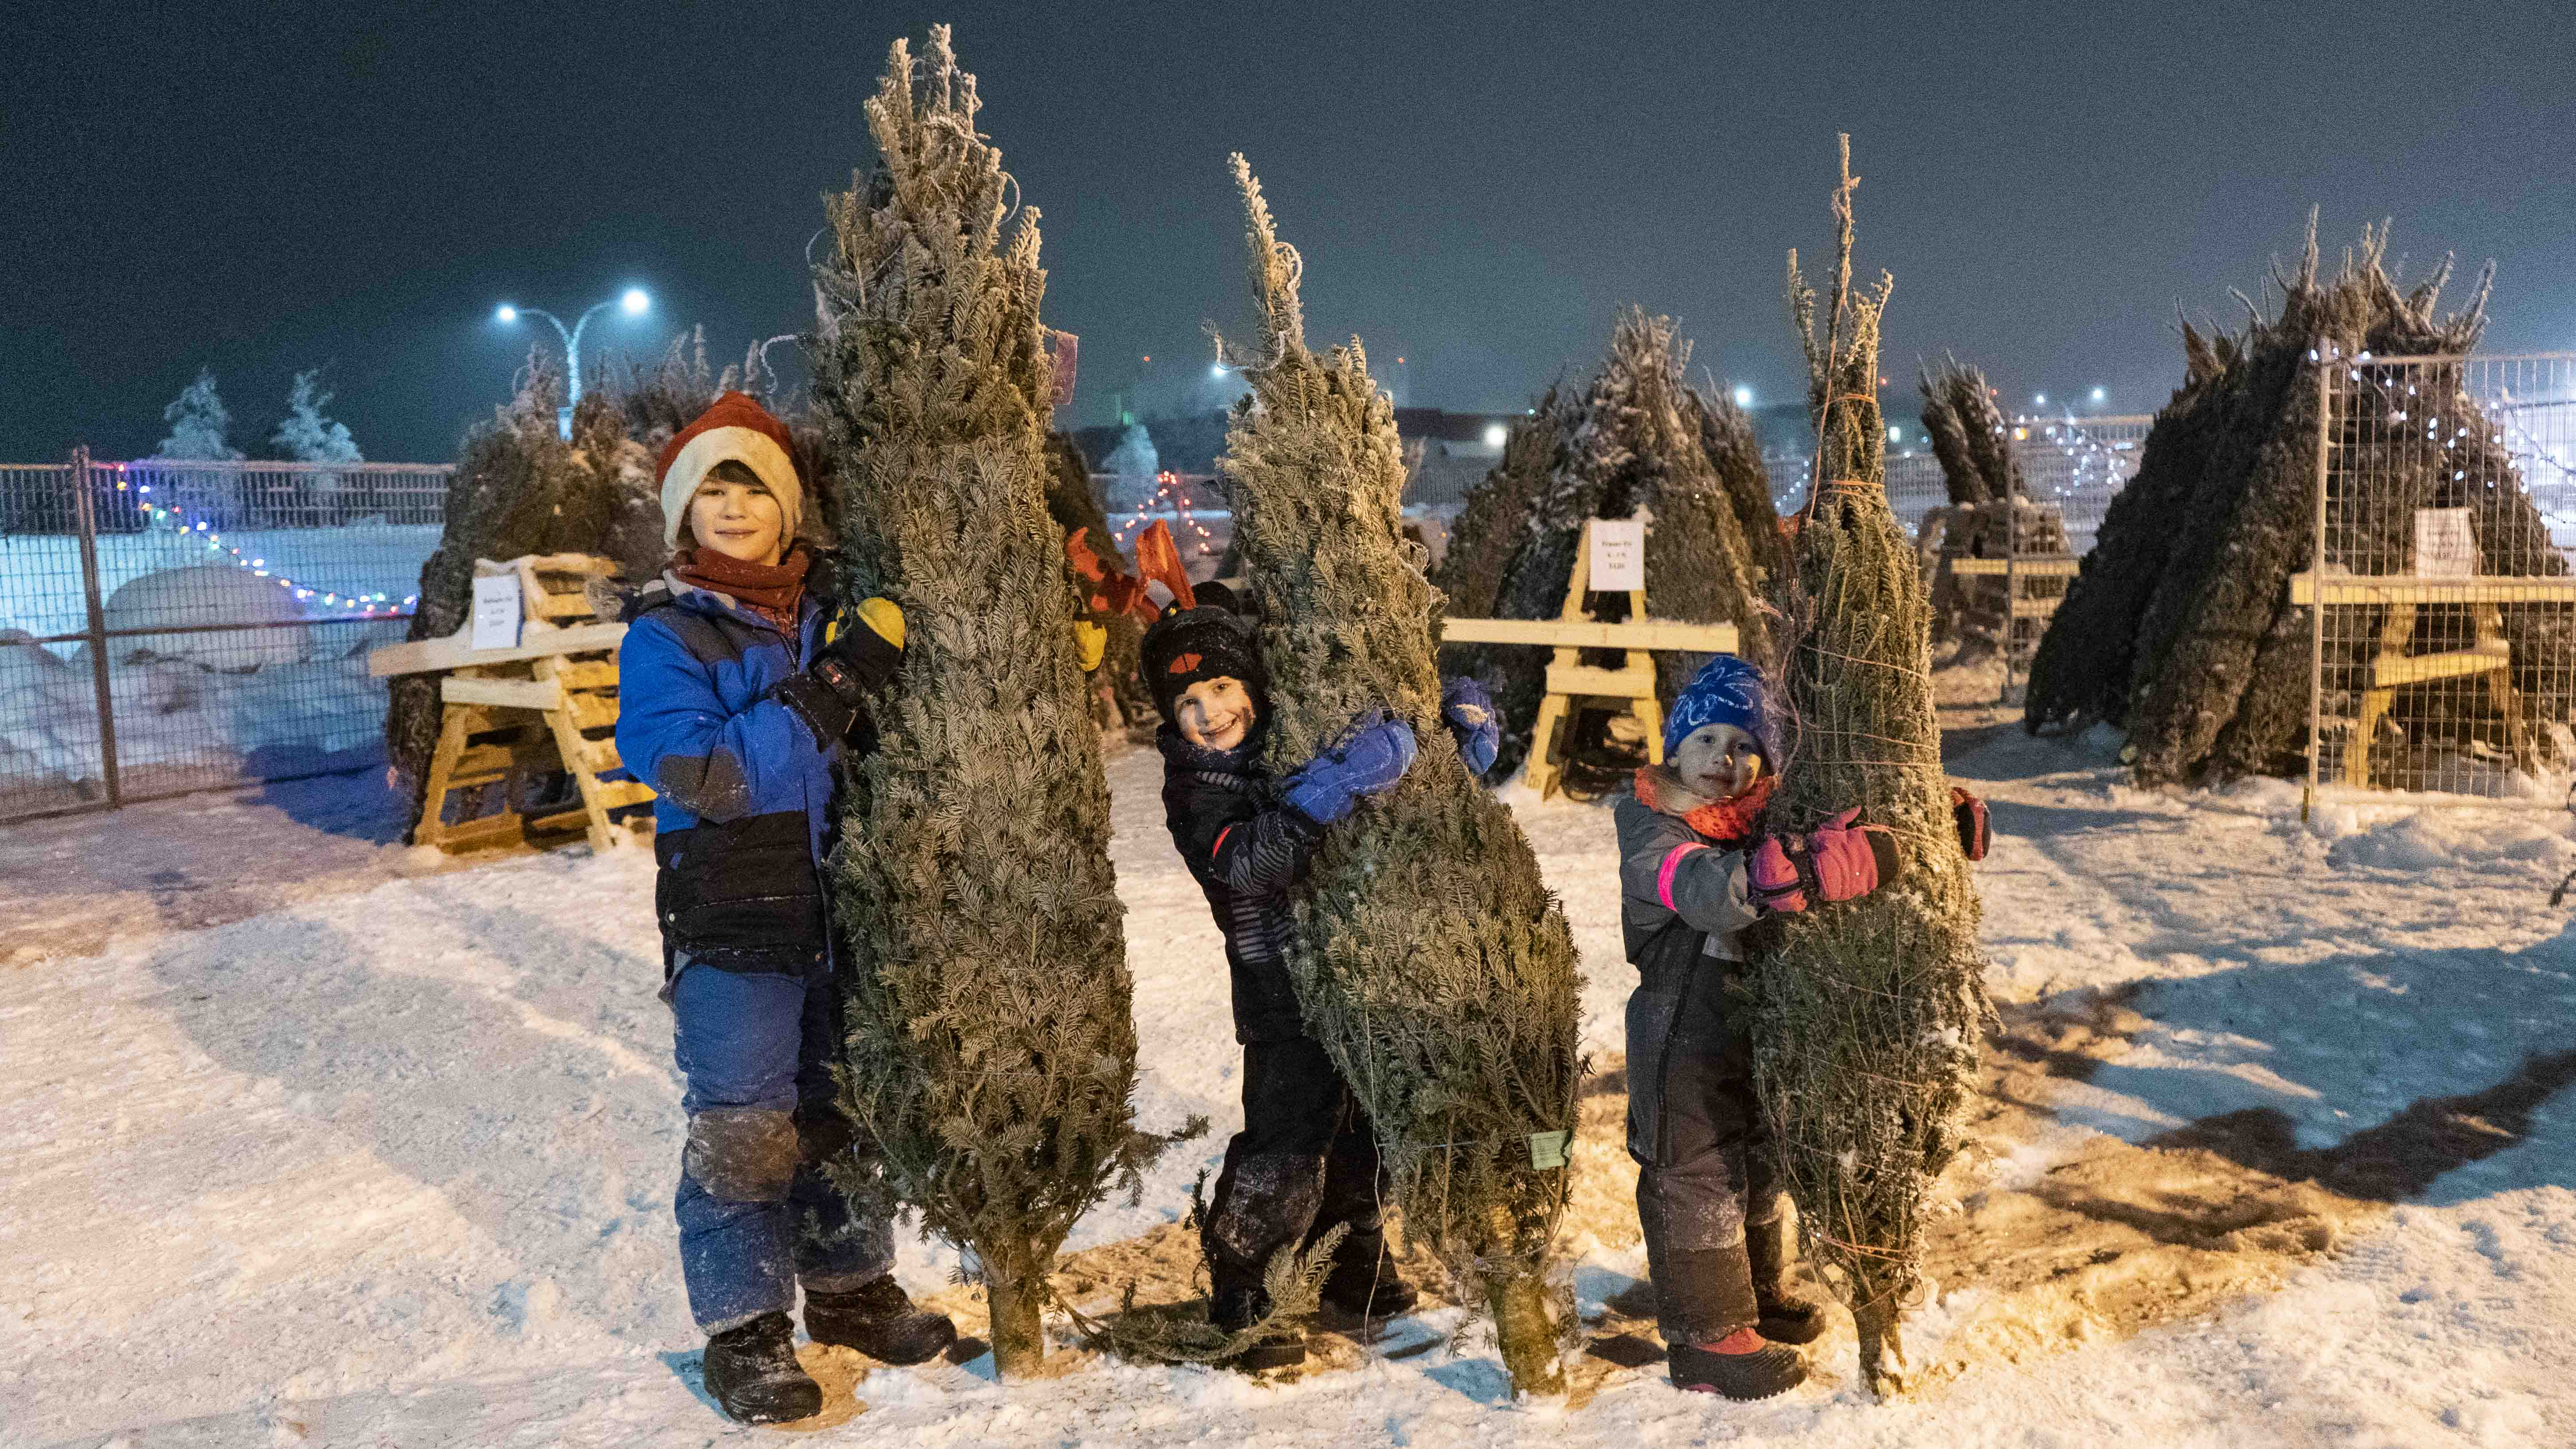 Benjamin McQuinn, 10, Liam Fage, 5, and Katie Fage, 4, sell Christmas trees in the Co-op parking lot. Sarah Pruys/Cabin Radio